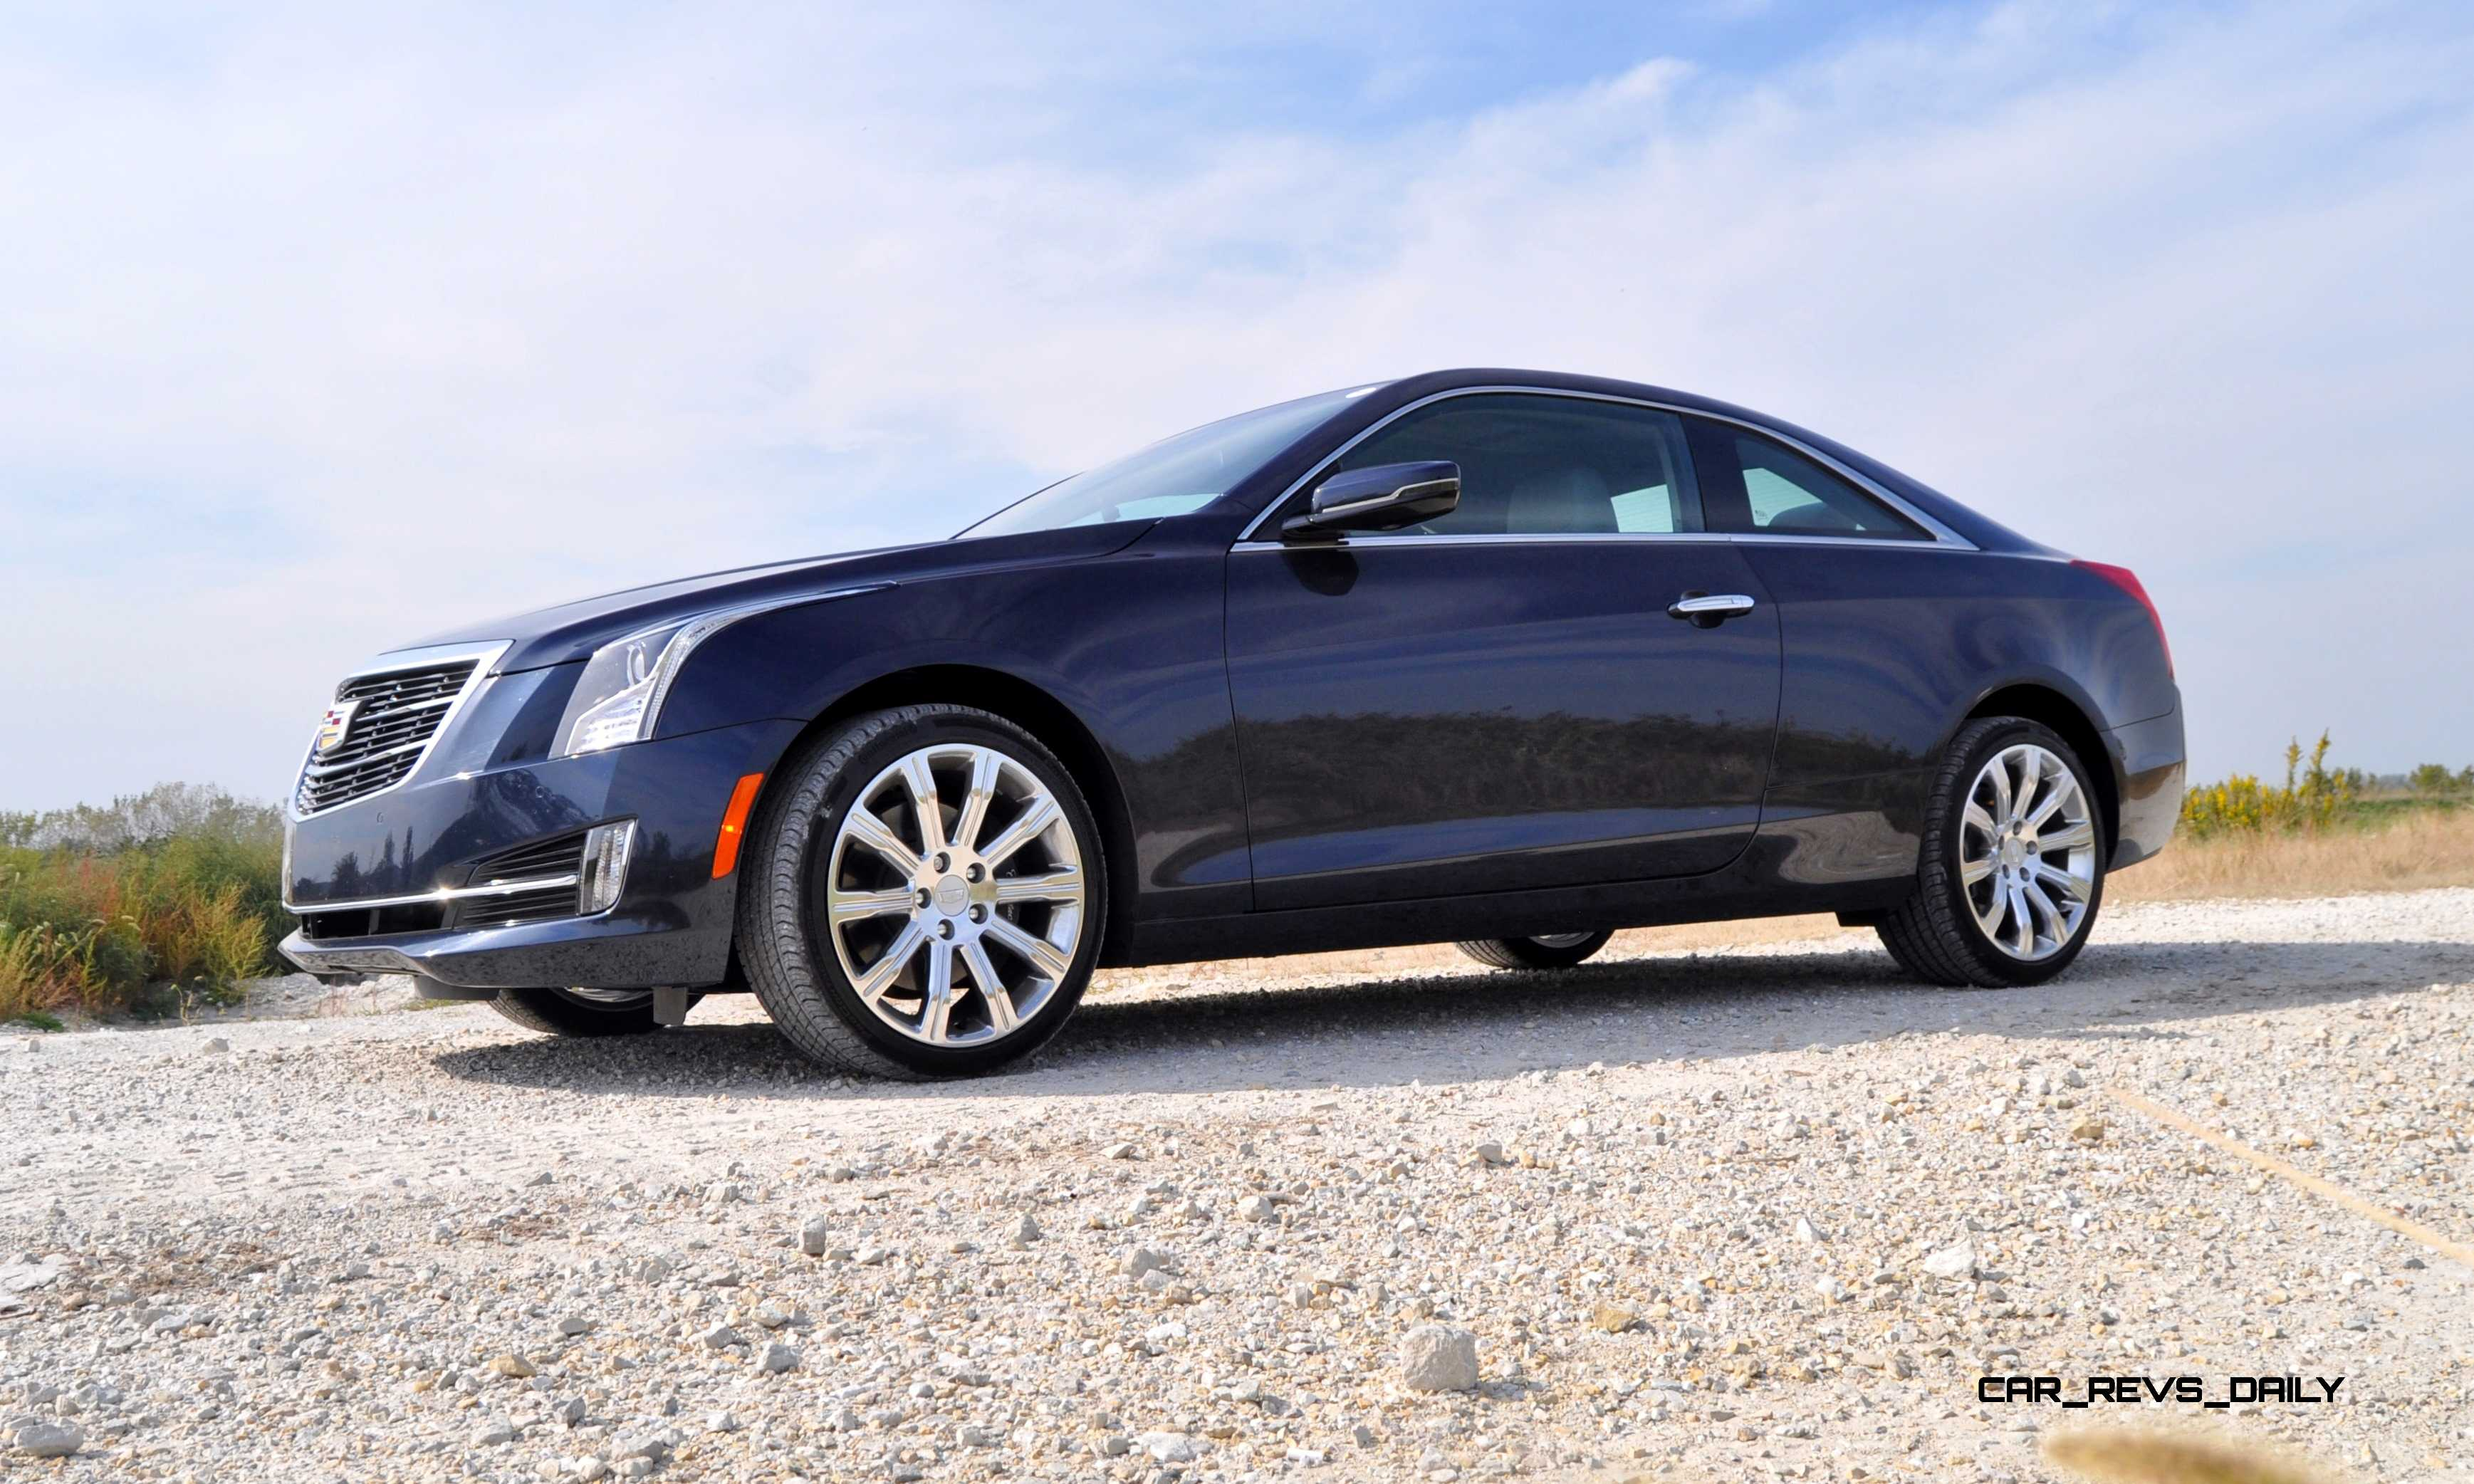 First Drive Review - 2015 Cadillac ATS Coupe 3.6 AWD Drives Well, But Lacks Sex Appeal at ...